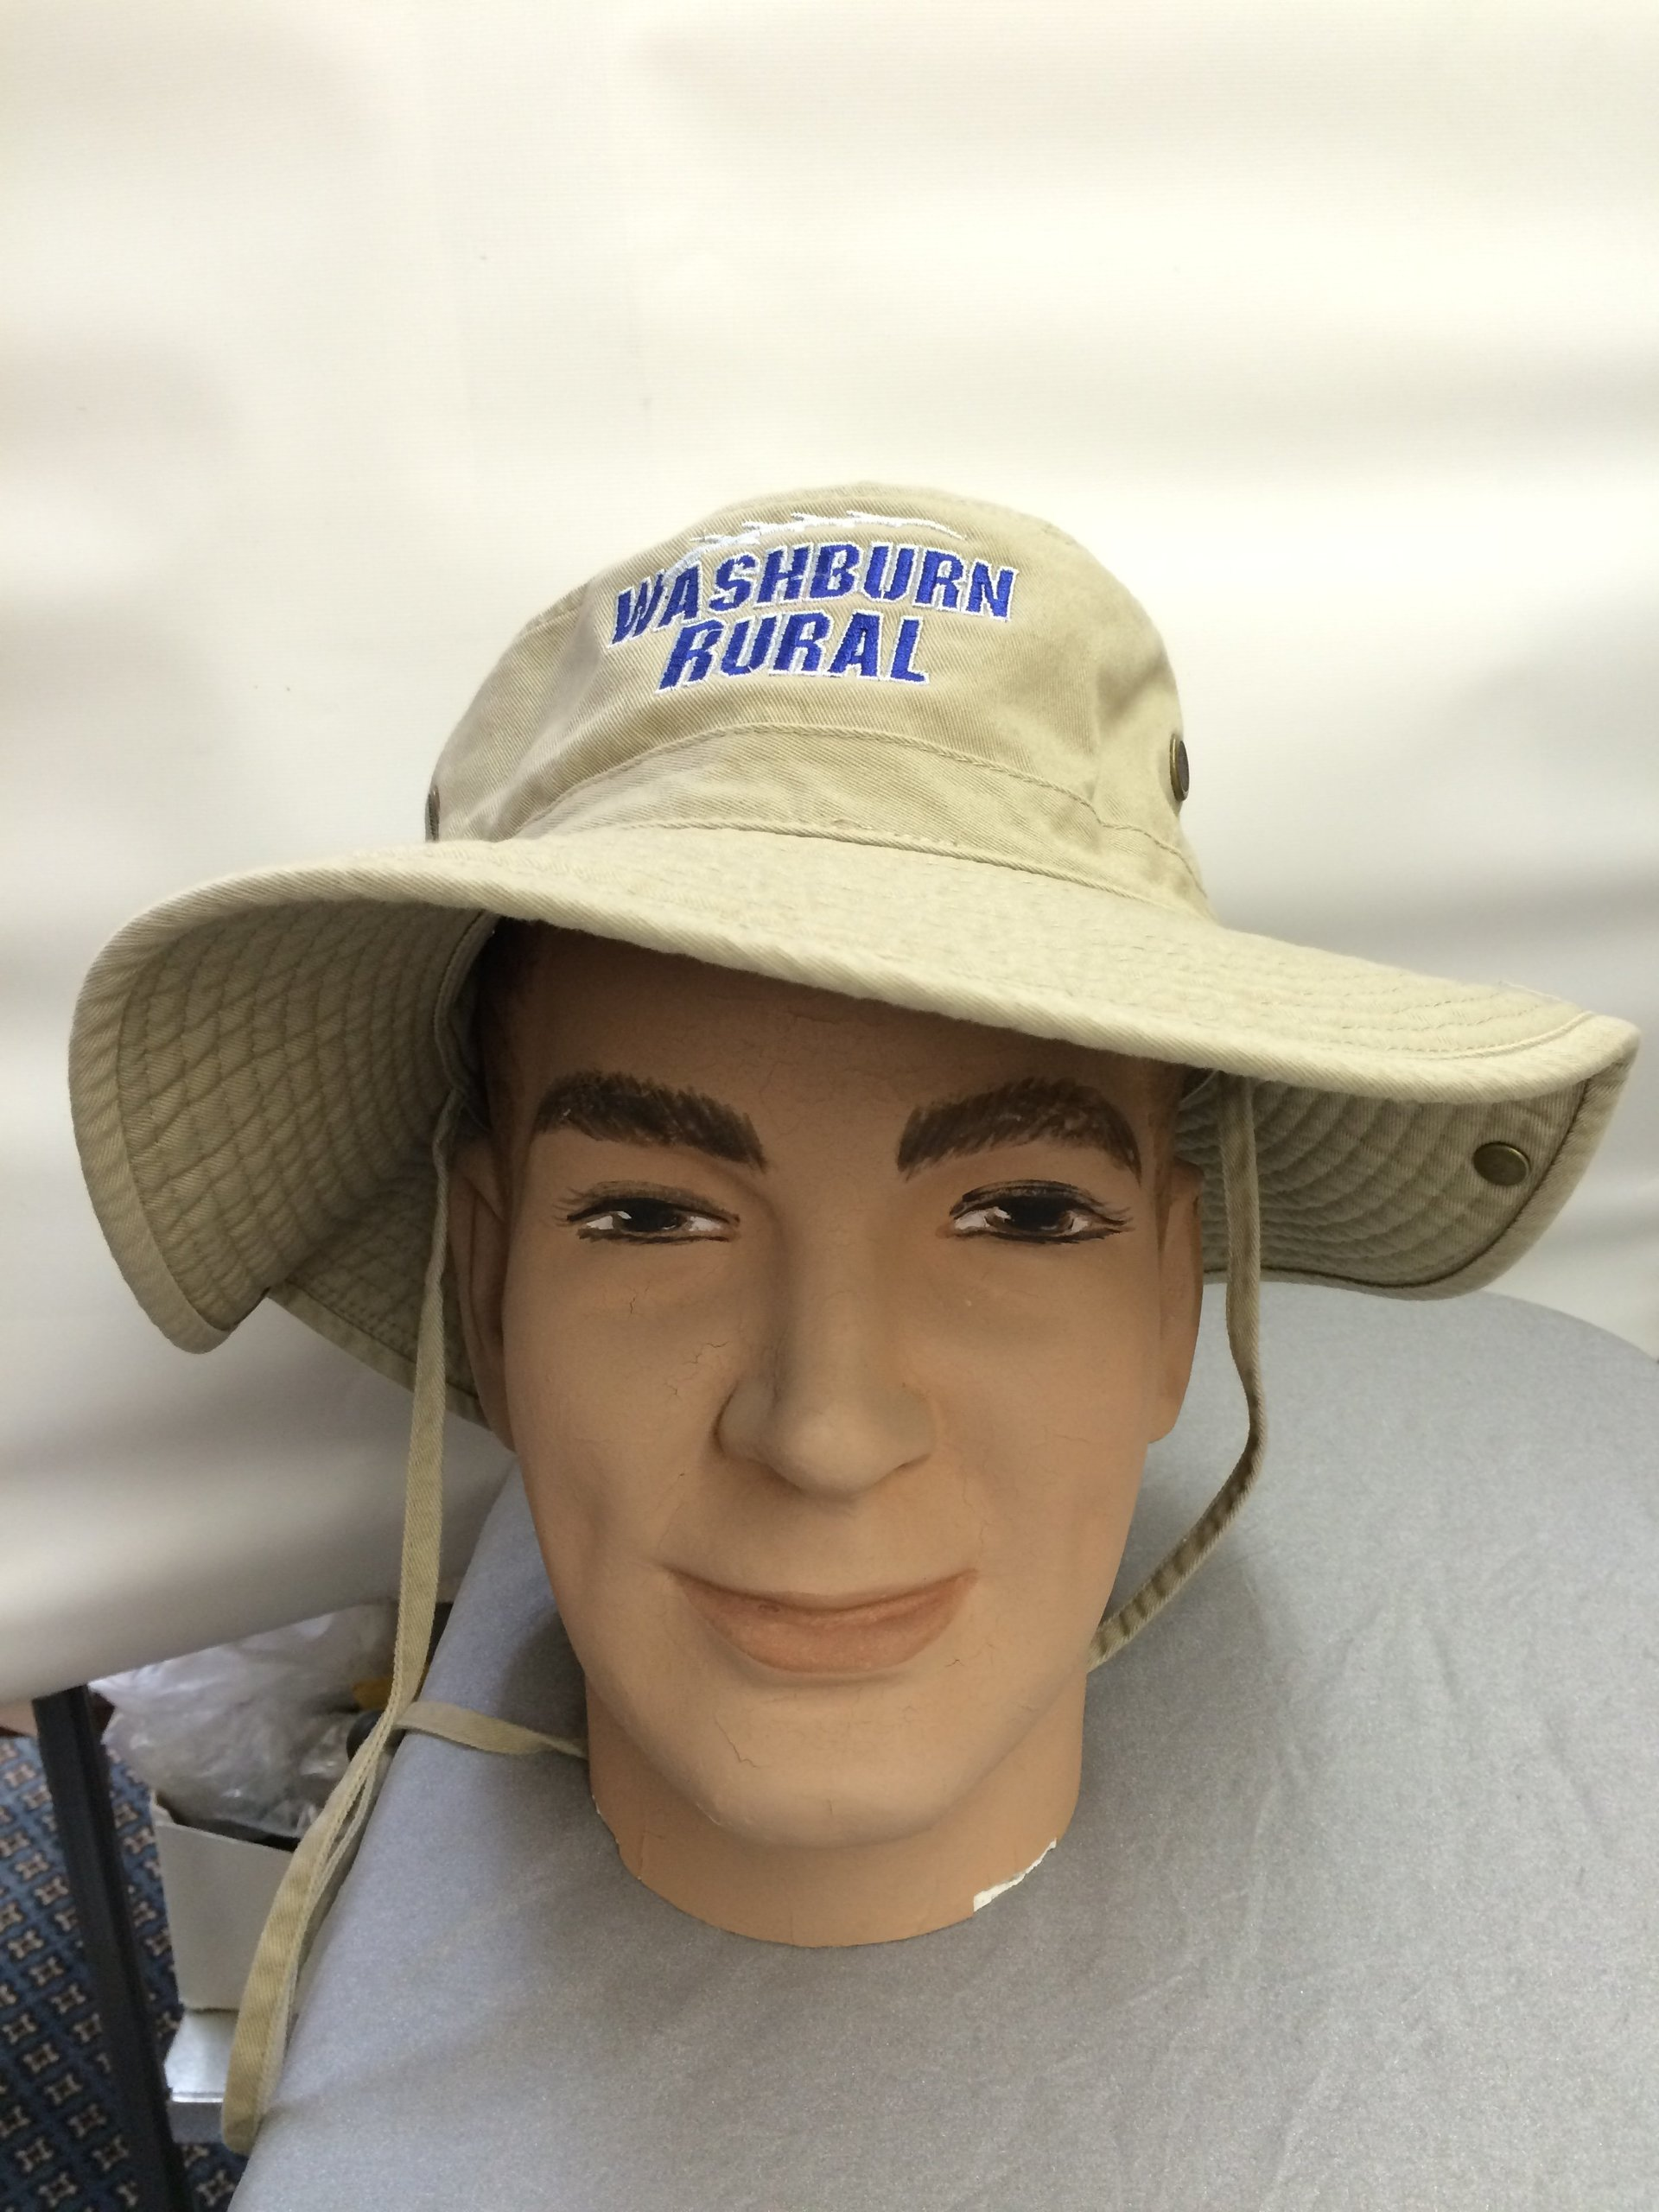 Mannequin head with a hat